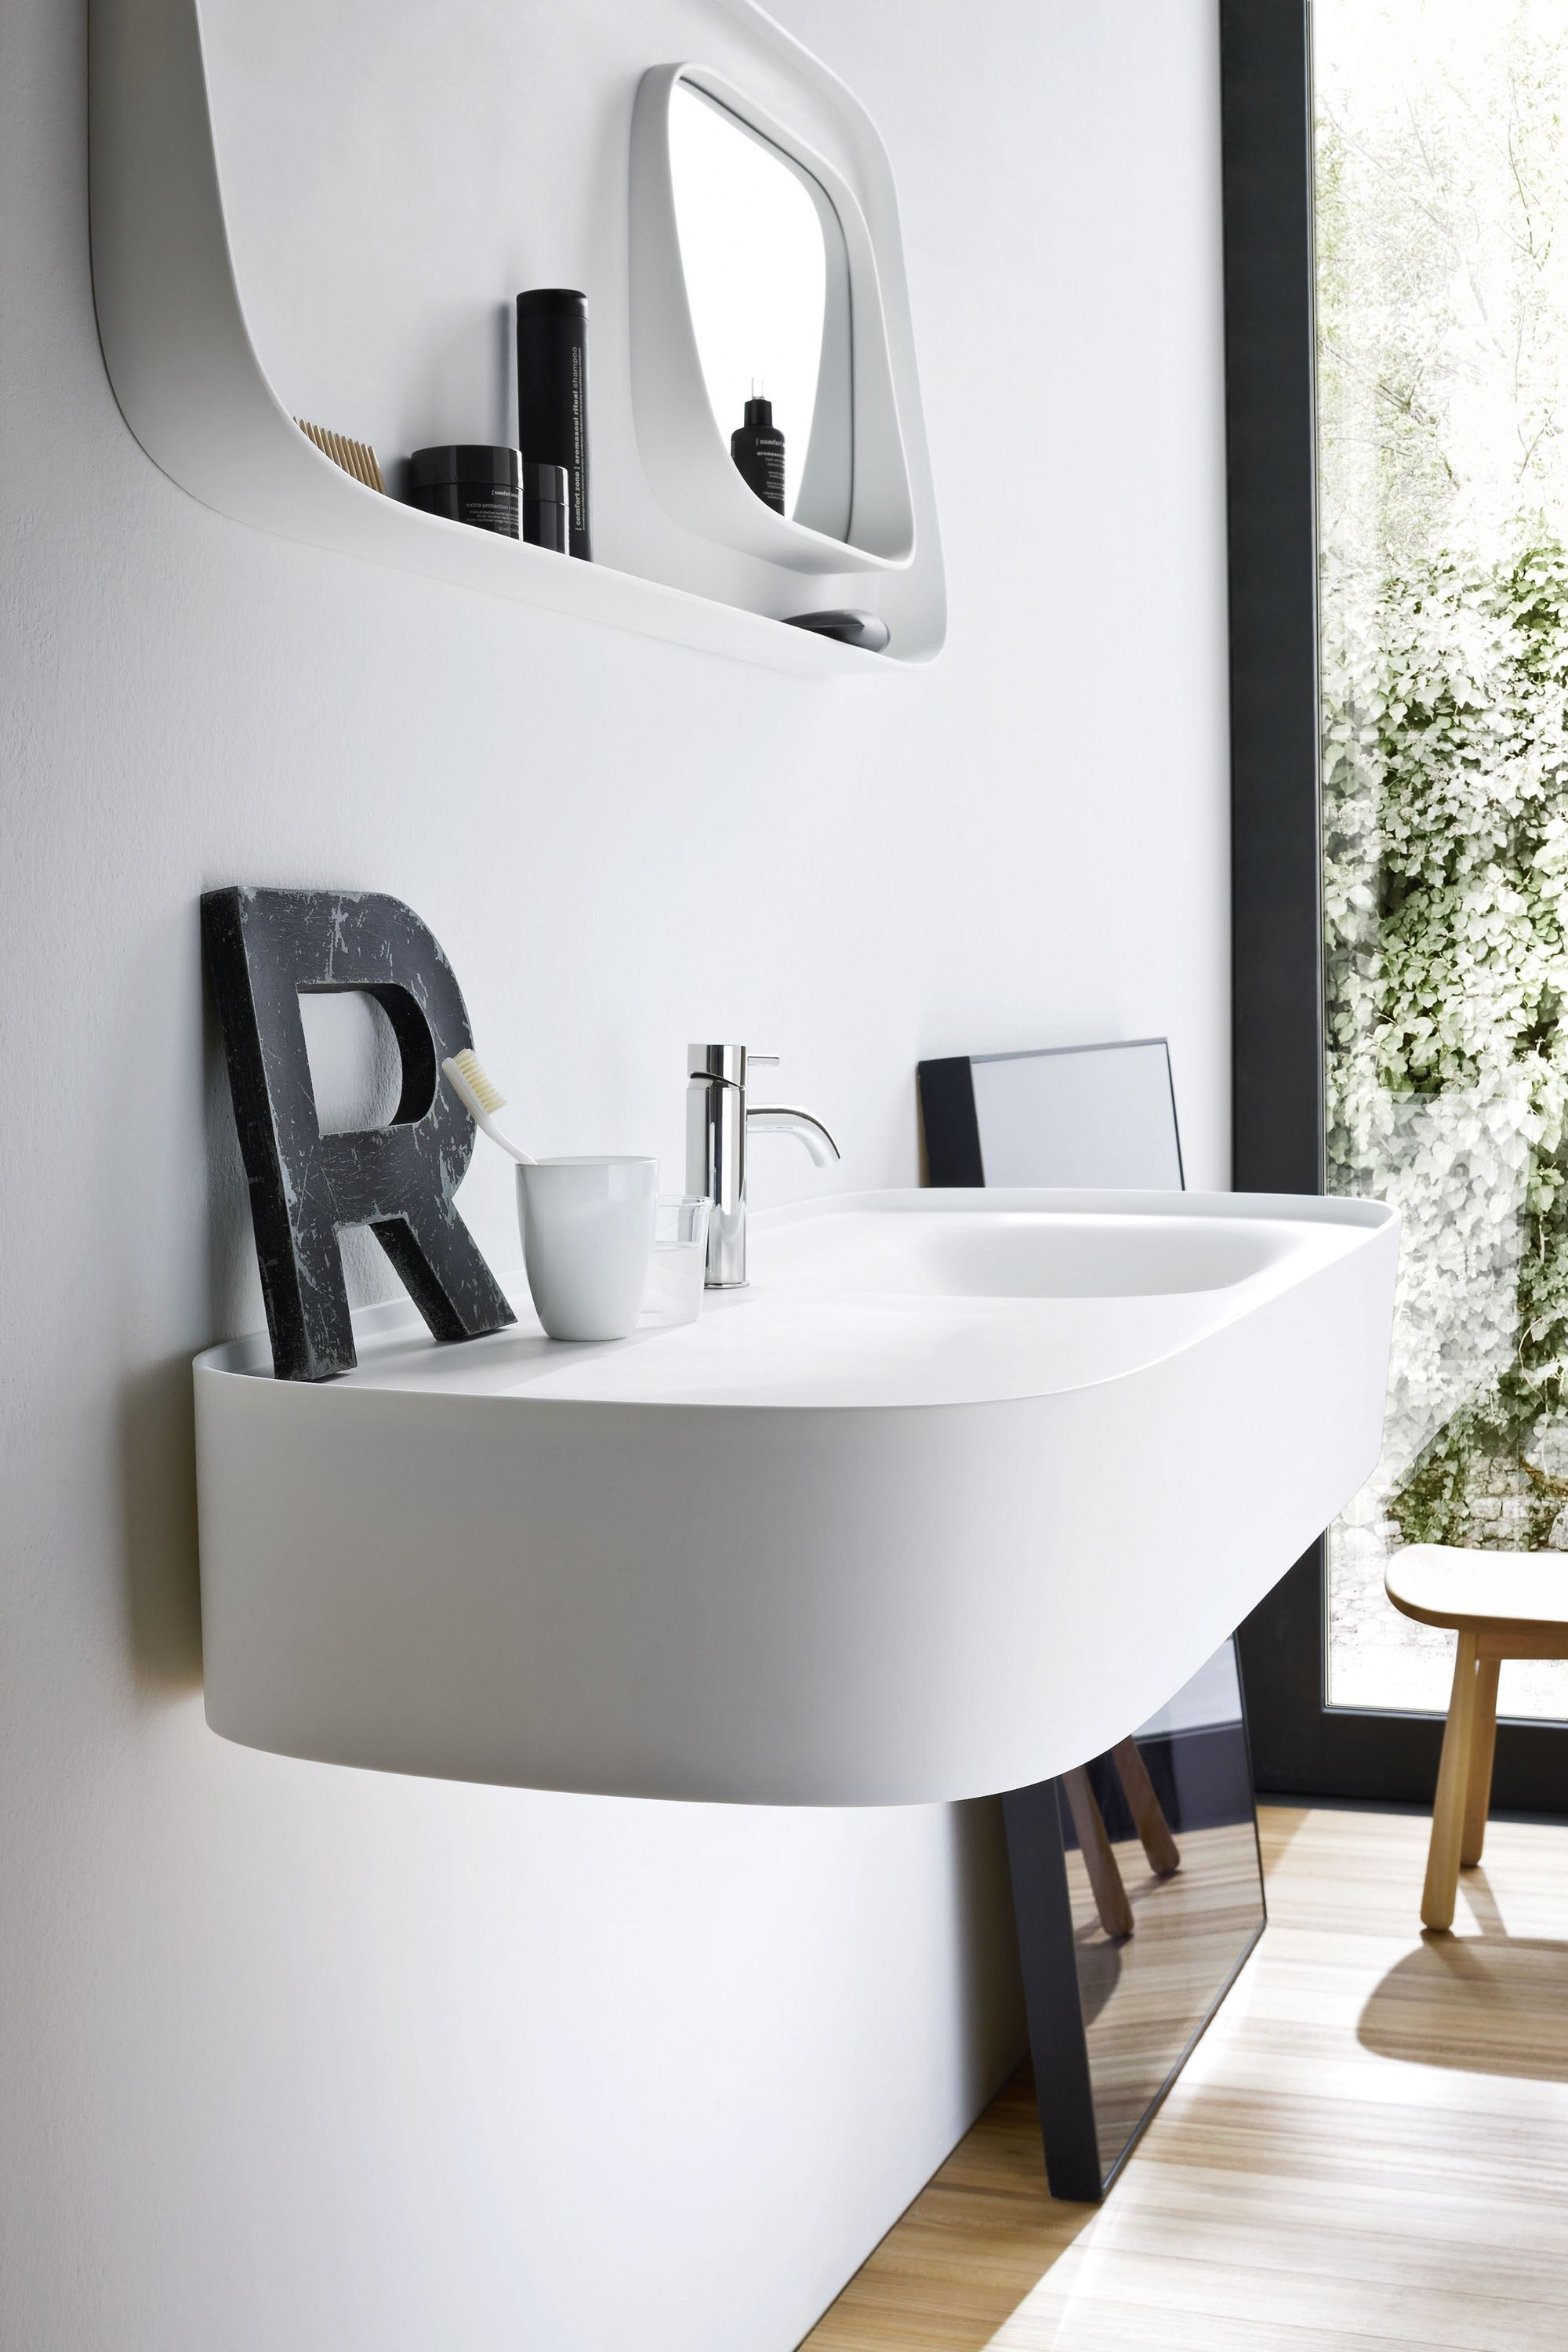 Piano Lavabo In Corian wall-mounted corian® washbasin with integrated countertop